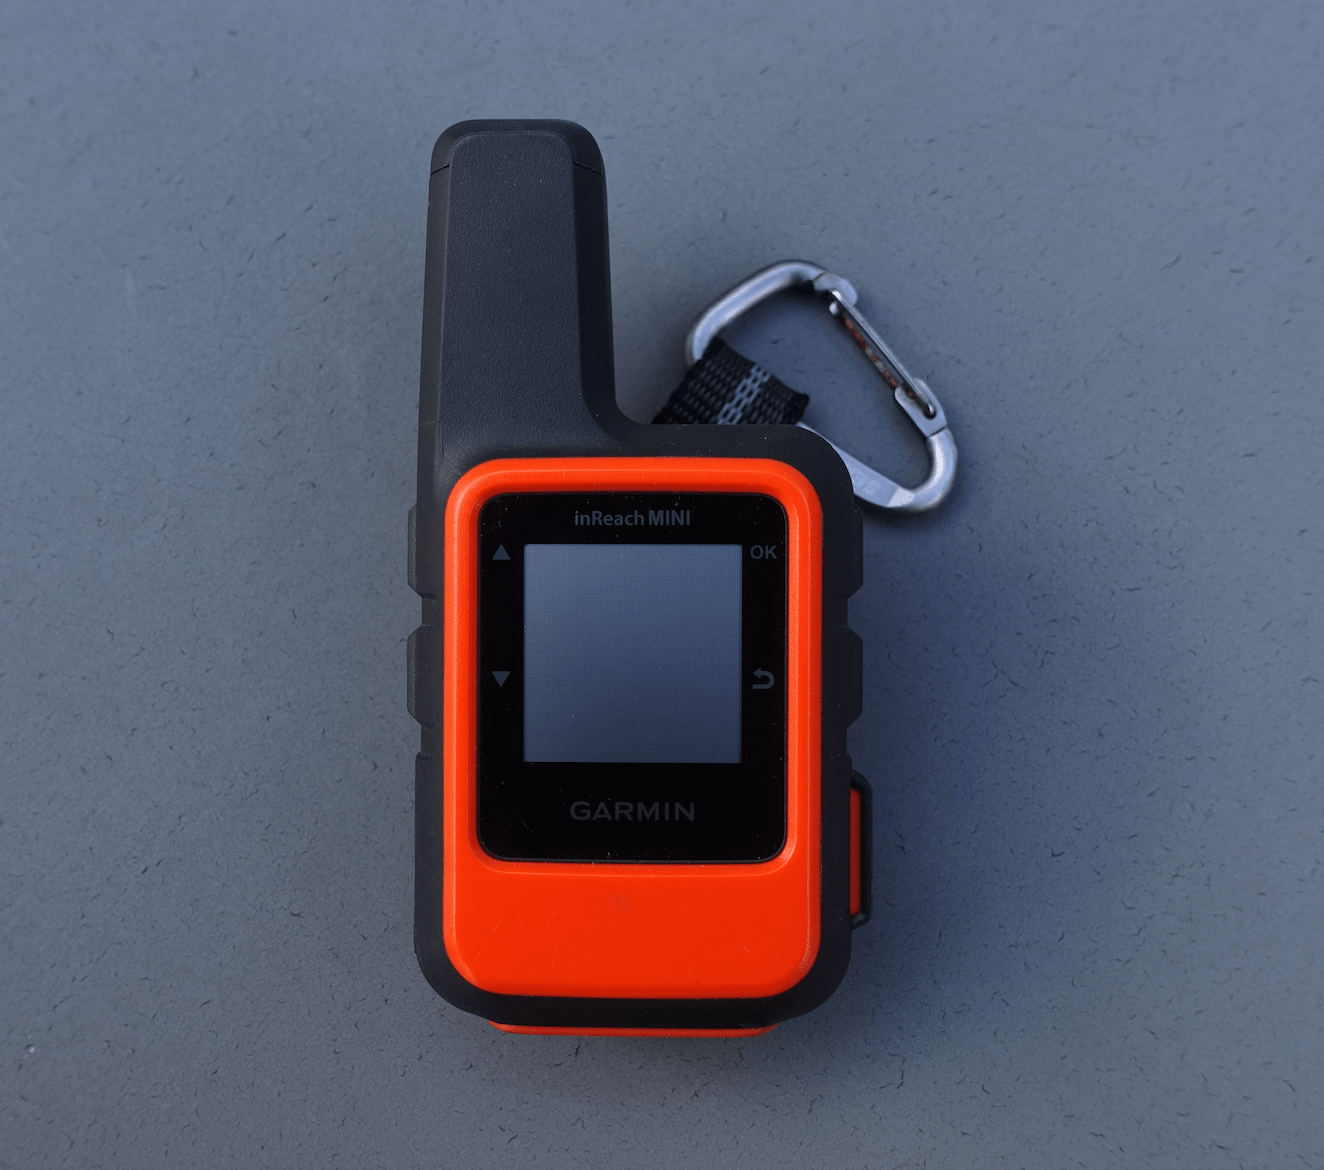 New Garmin Front View-min.png